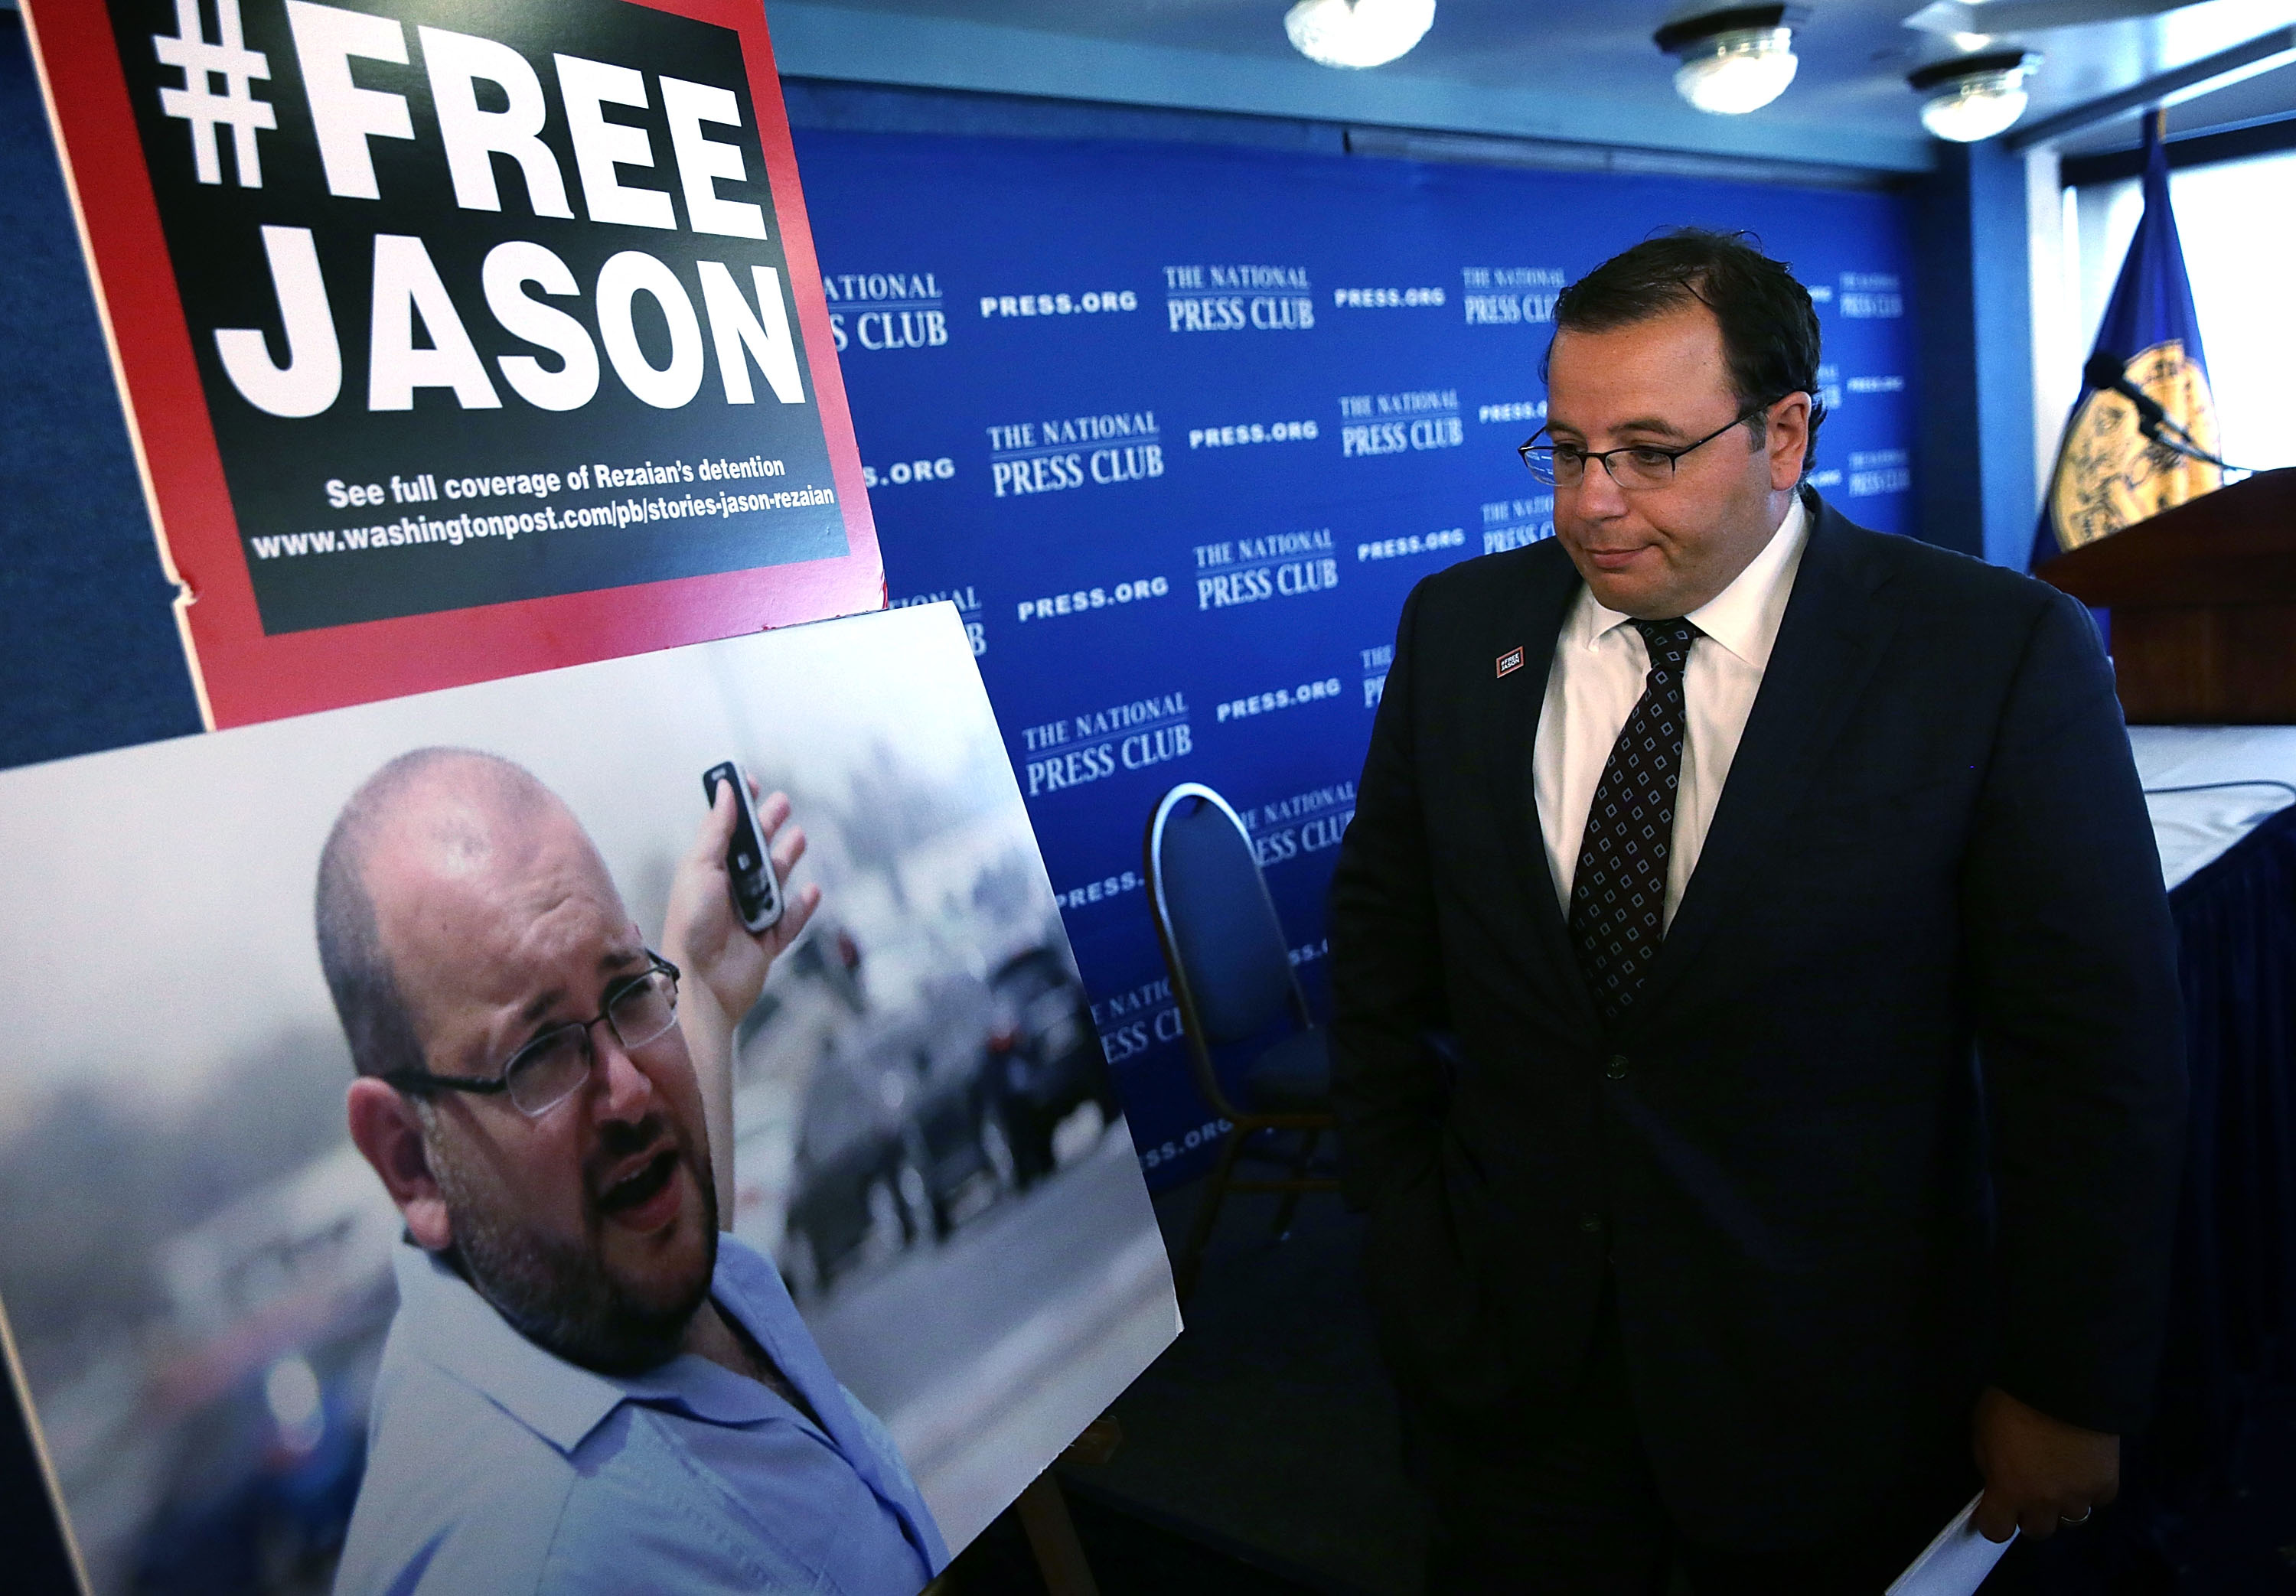 Washington Post Update: Jason Rezaian Update: Washington Post Journalist, Three